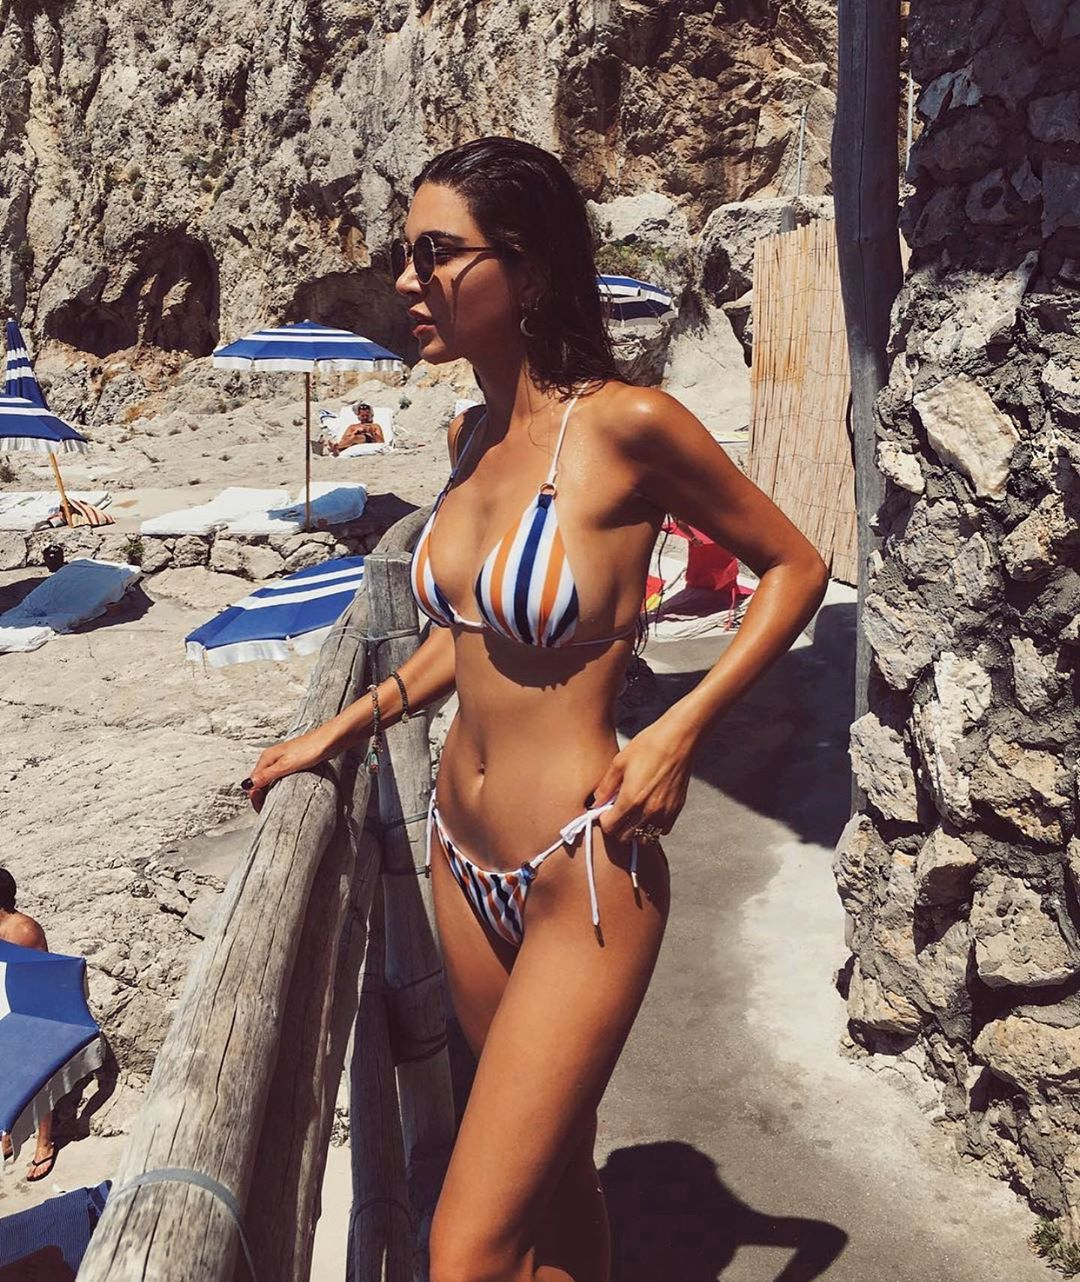 Negin Mirsalehi donning Skimpy blue white mustard striped Lavish Alice bikini bottom with striped